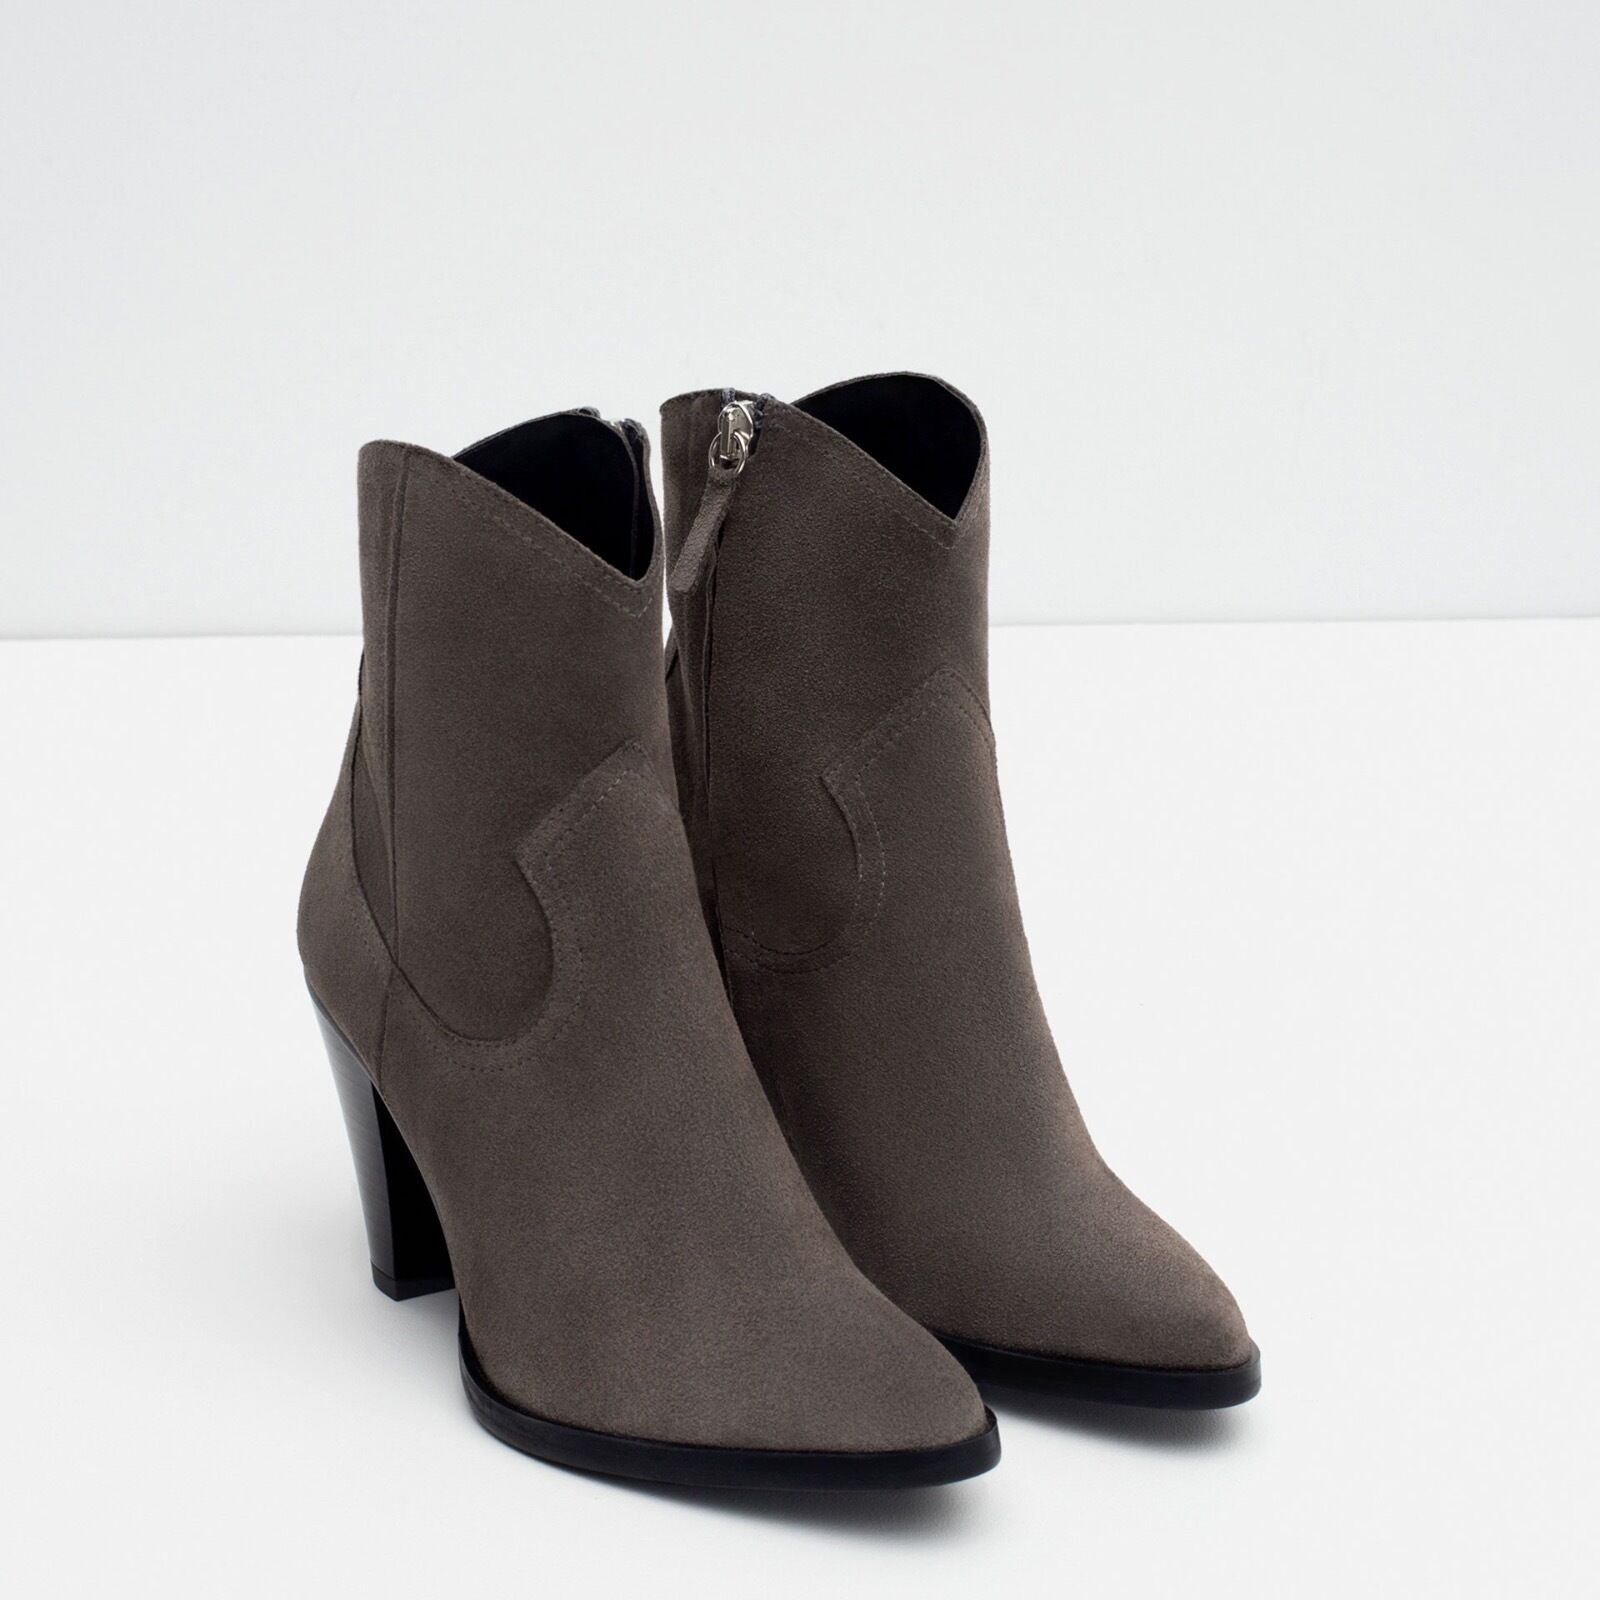 SOLD OUT NWT Zara Leather Cowboy Heeled Ankle Boots Boots Boots 8fd068